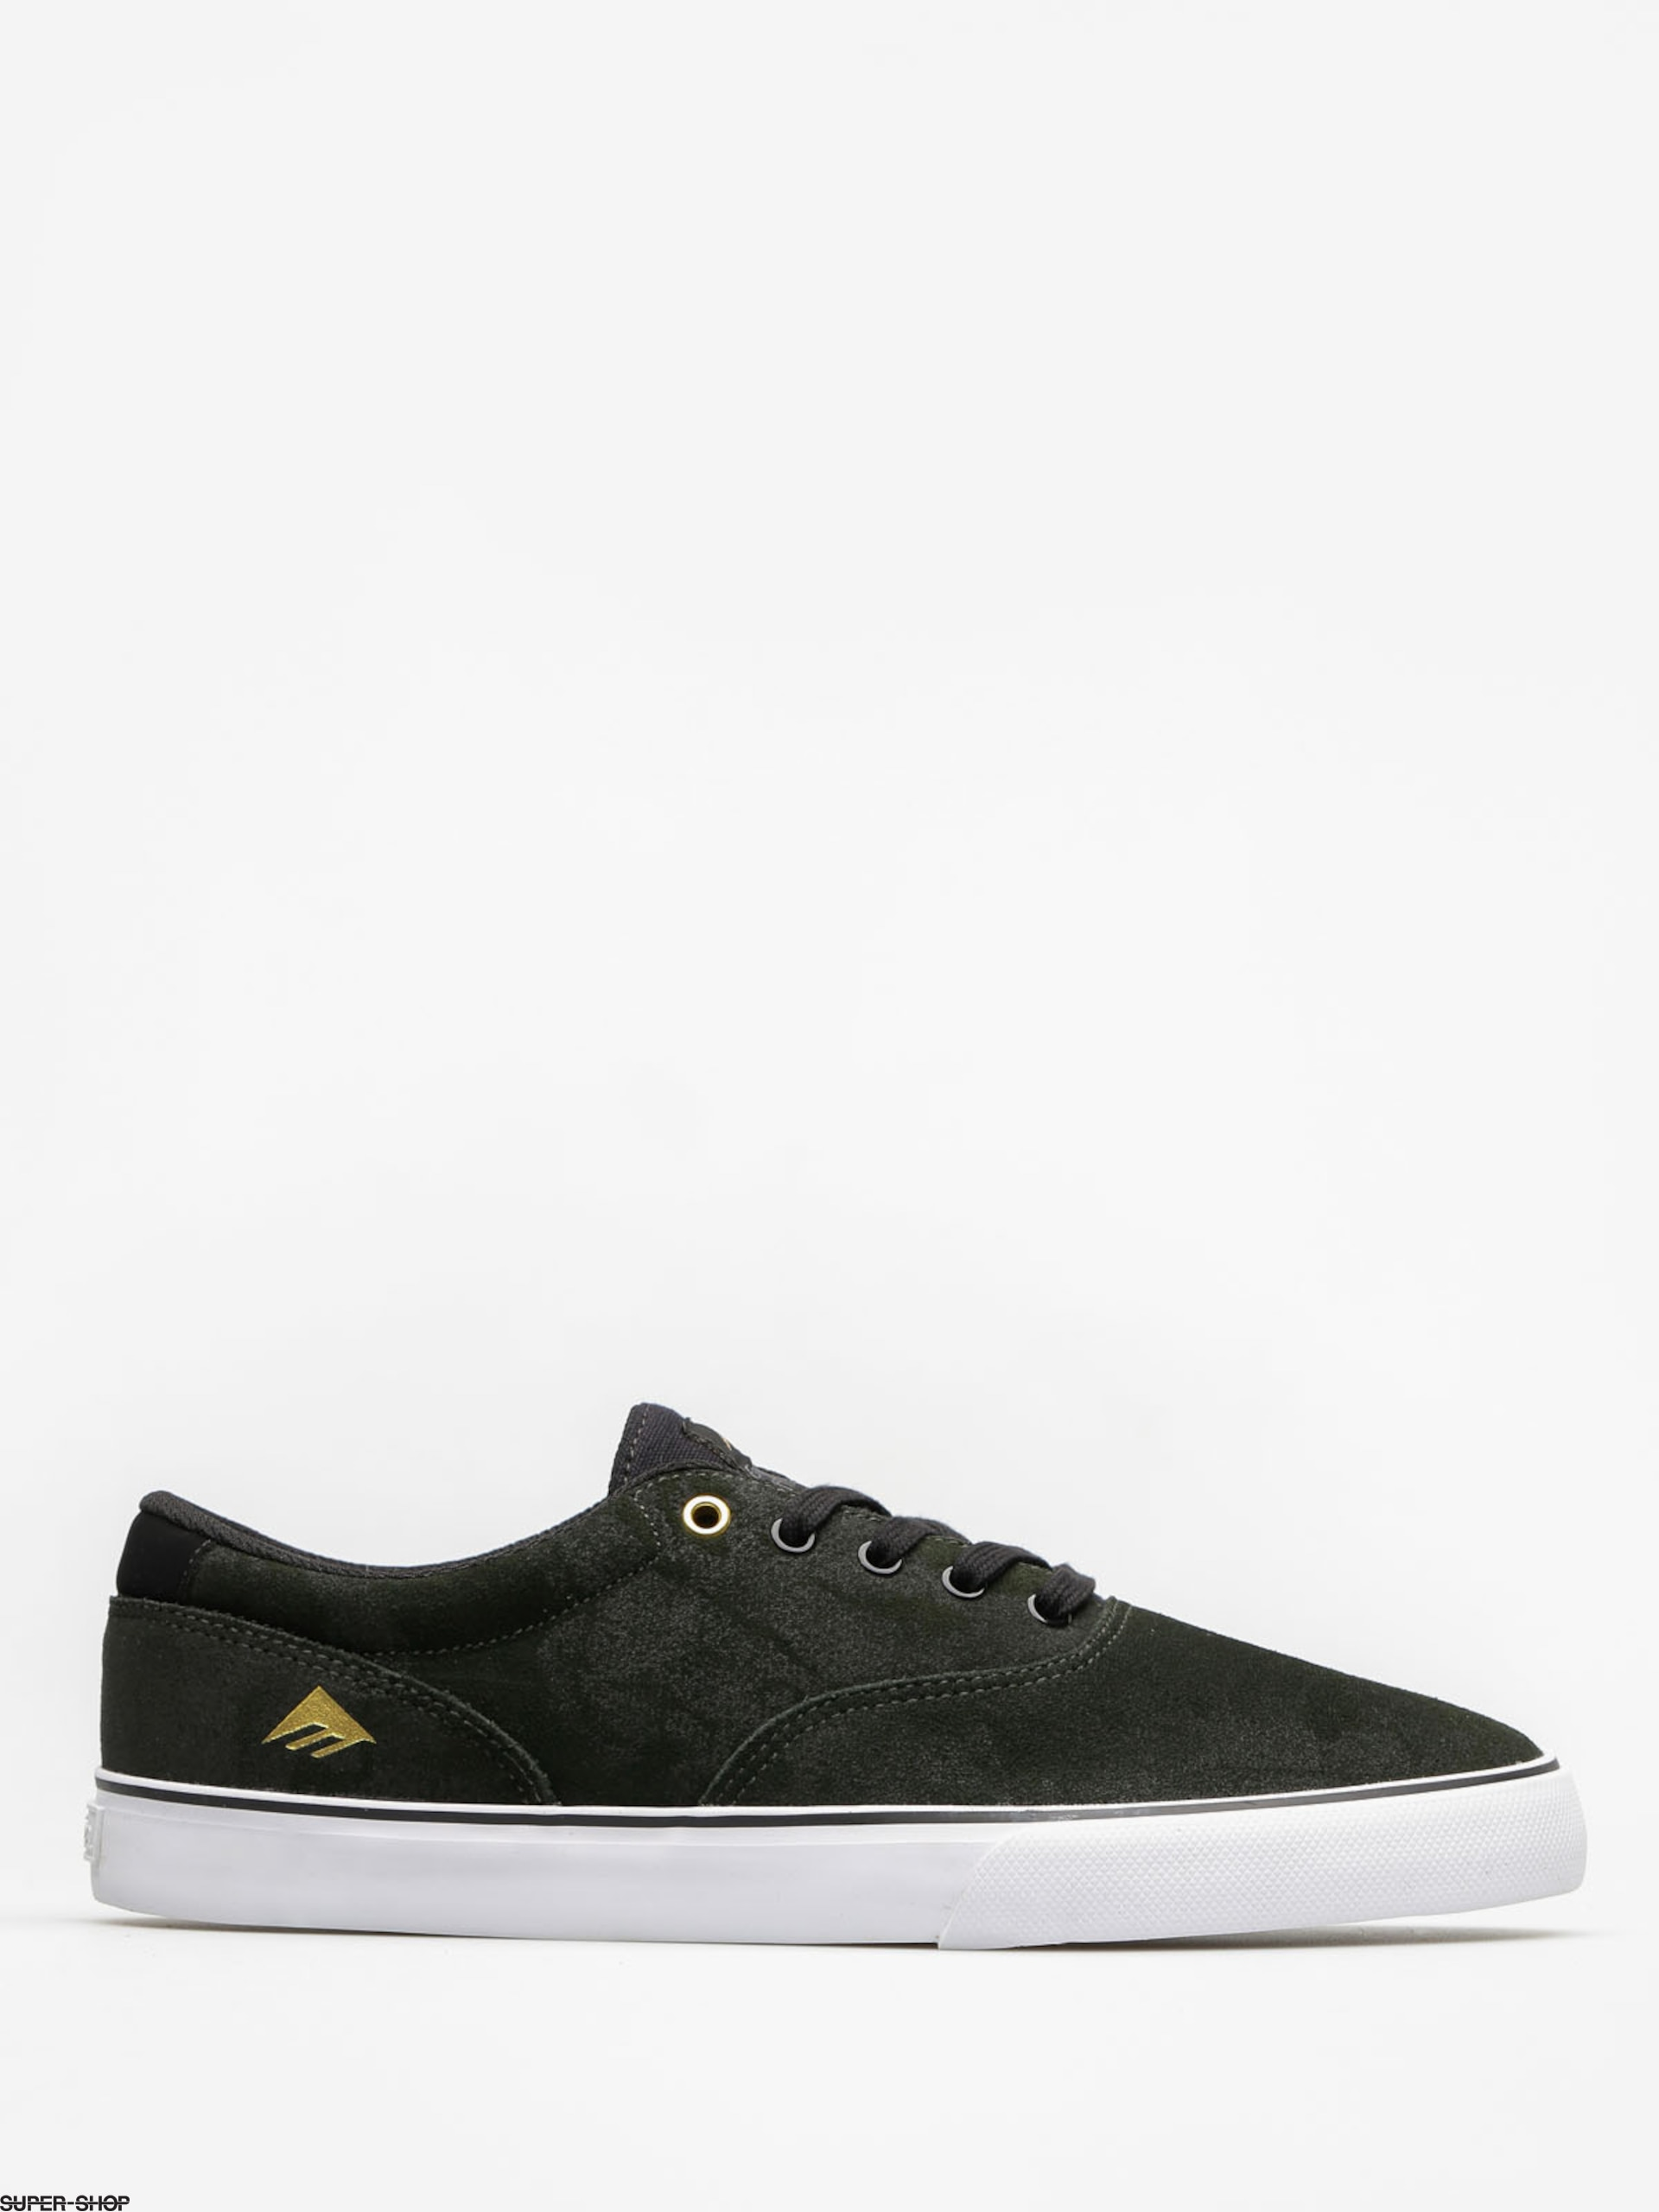 Emerica Shoes Provost Slim Vulc (green/black/white)